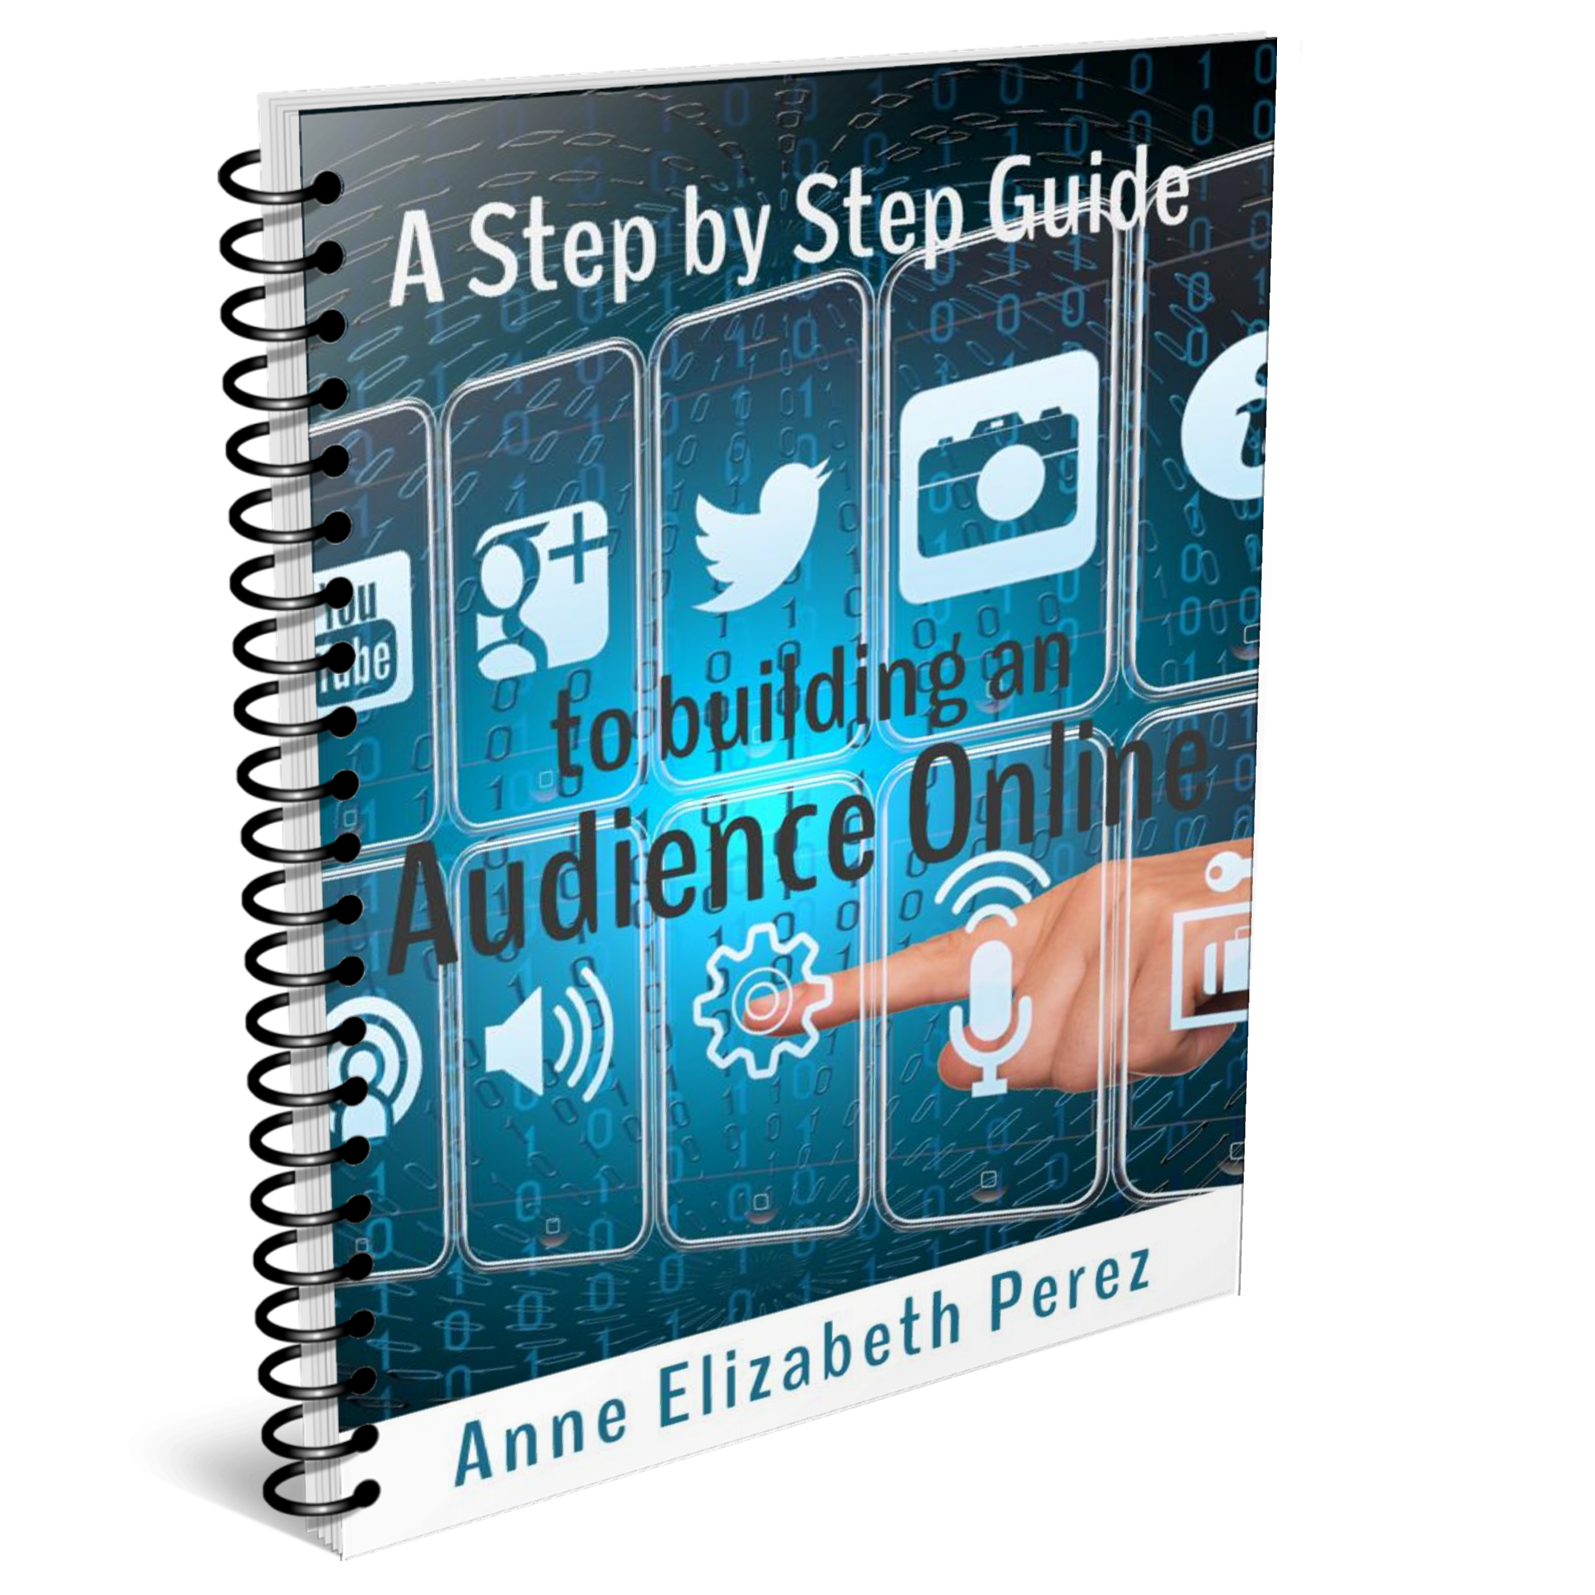 A step by step guide to building an audience online